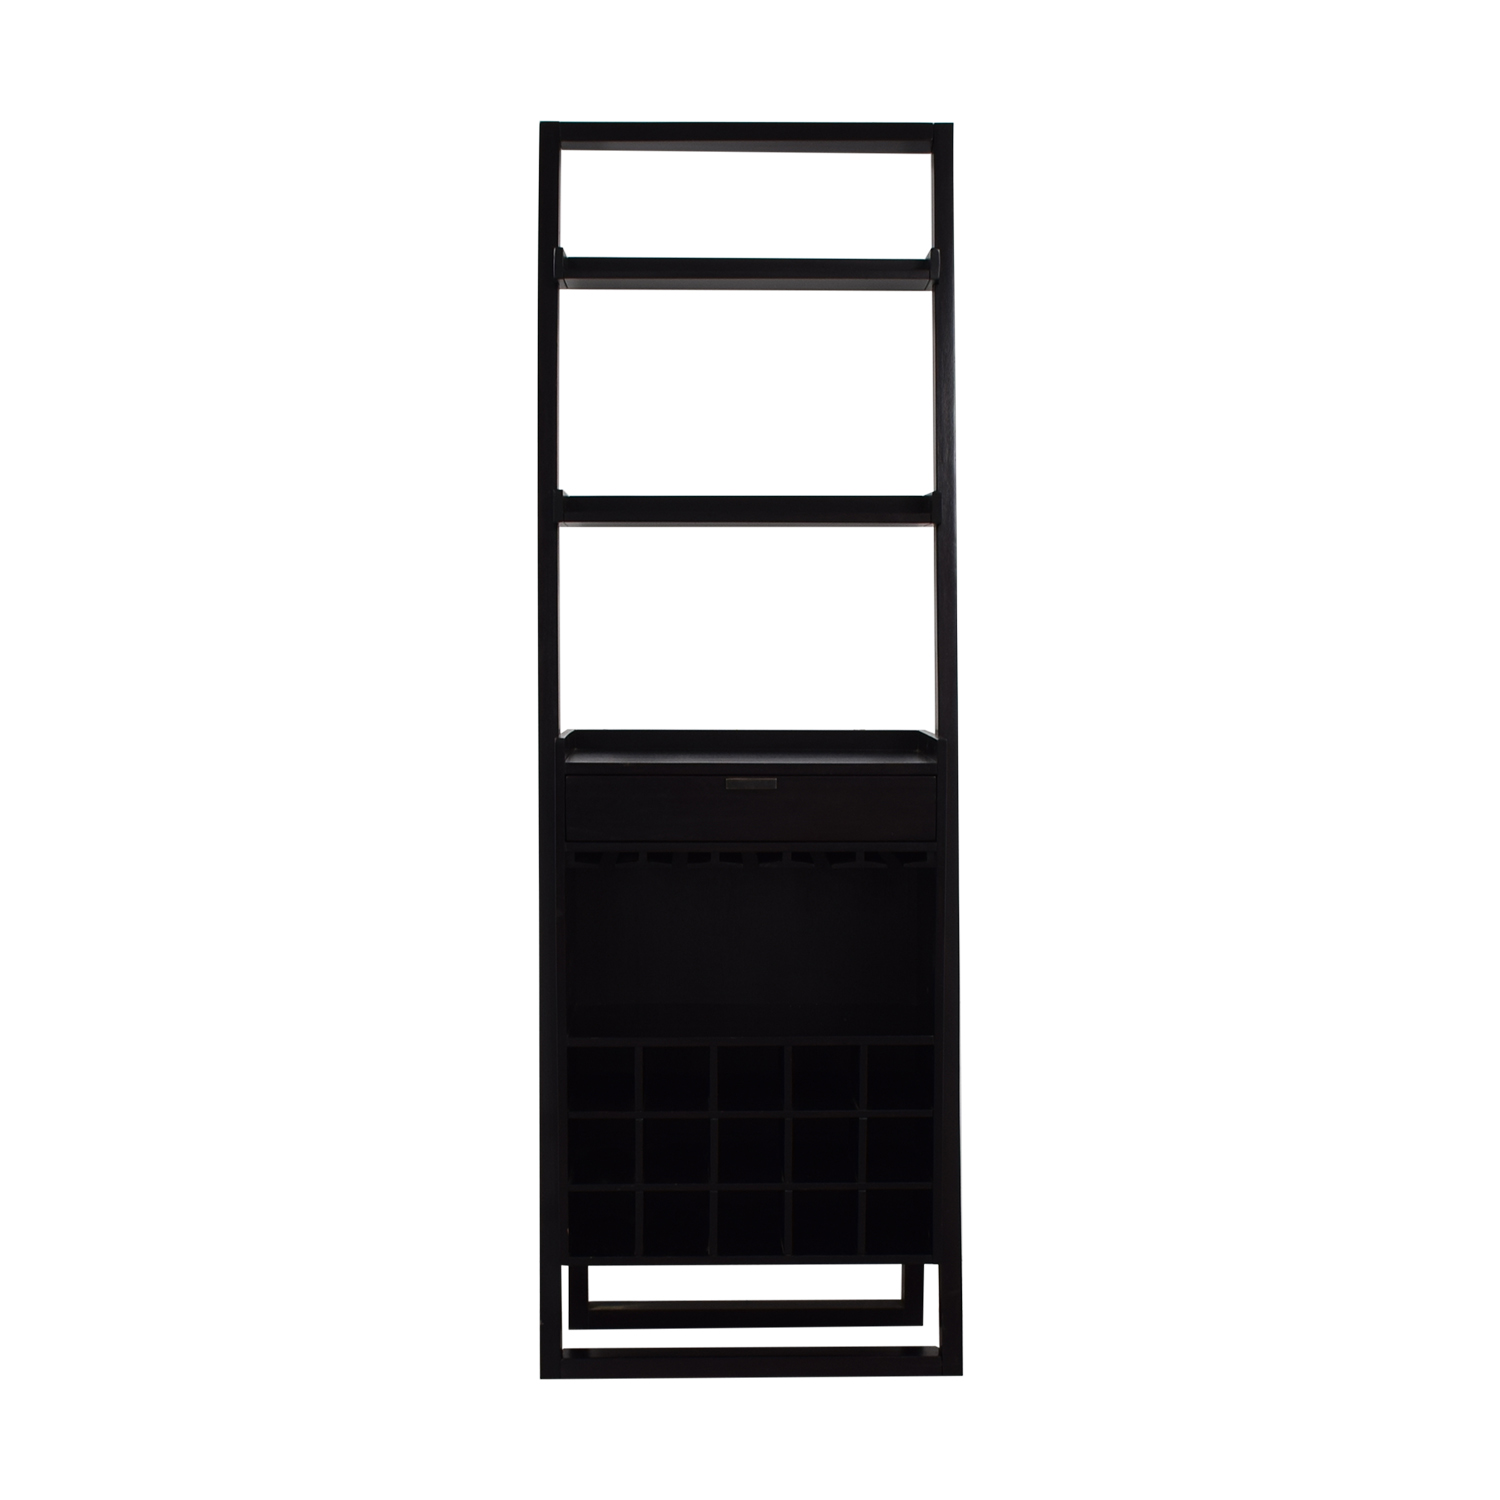 Crate & Barrel Crate & Barrel Brown Leaning Bar Bookcase dimensions